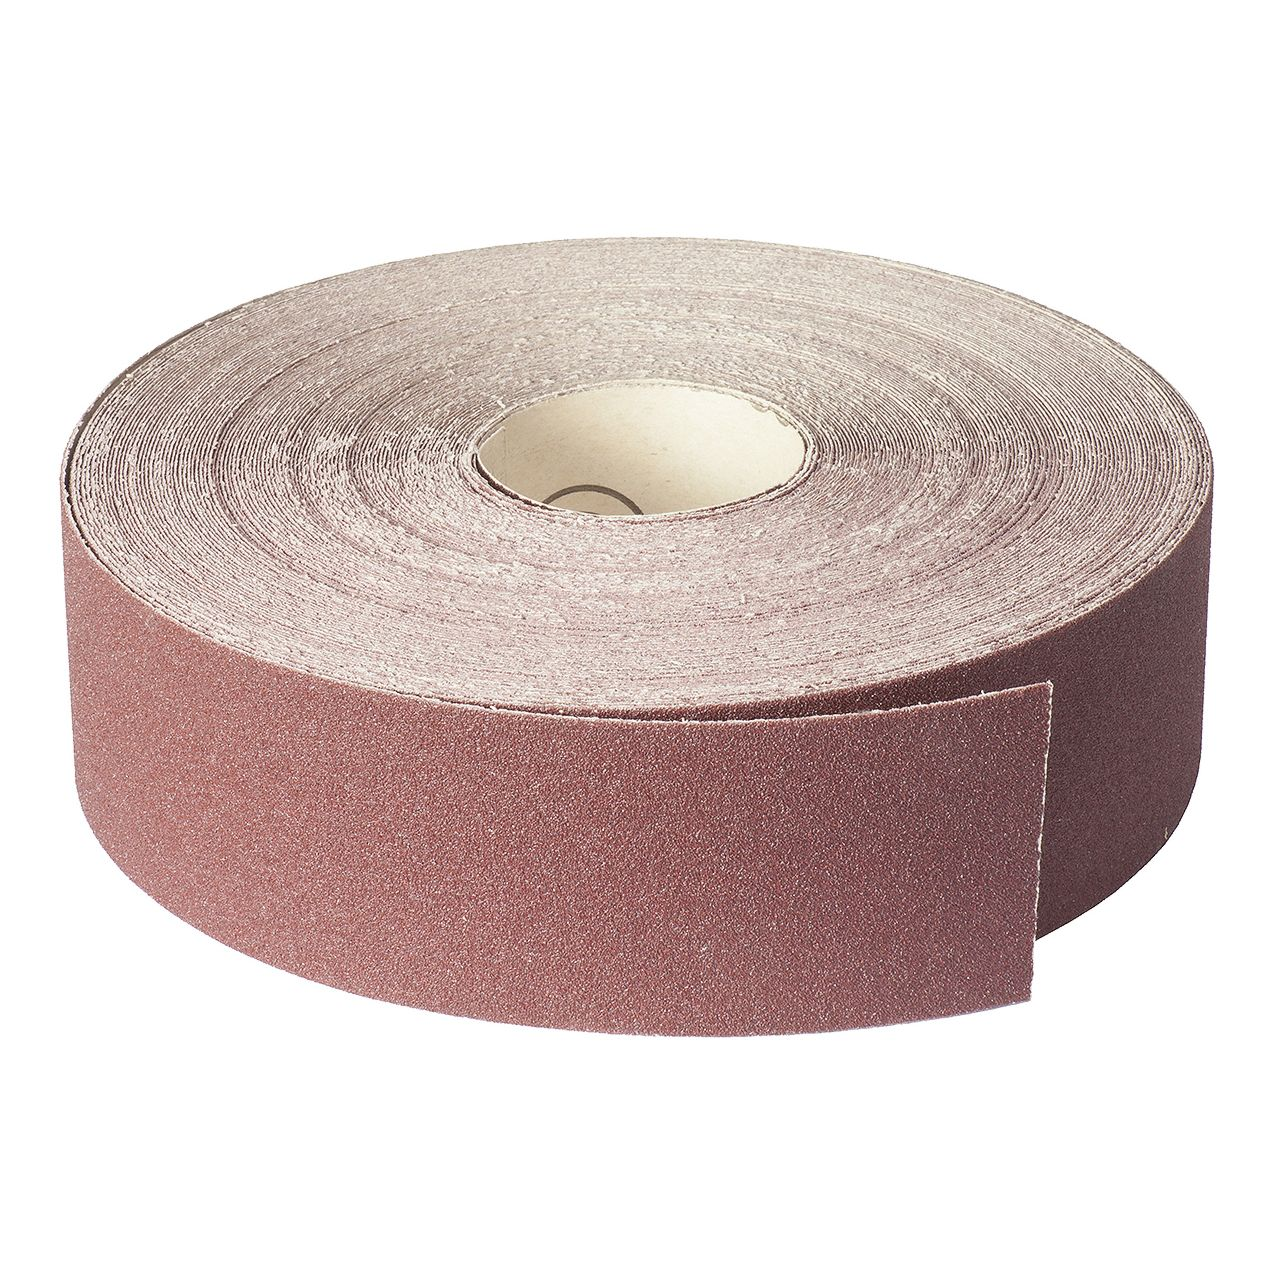 Image of   Sanding belt roll 50 m - grit 60